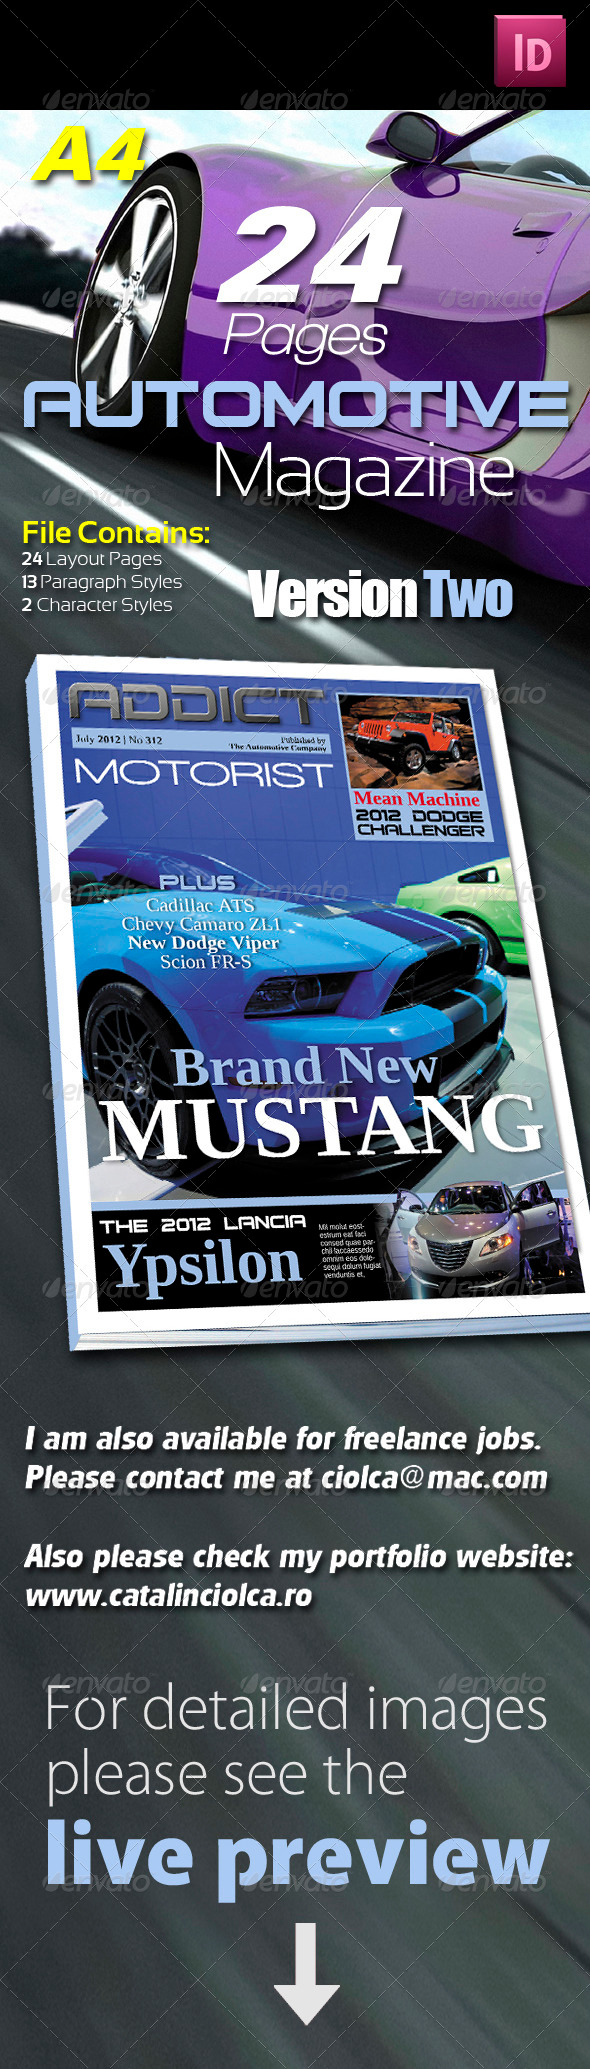 24 Pages Automotive Magazine Version Two - Magazines Print Templates